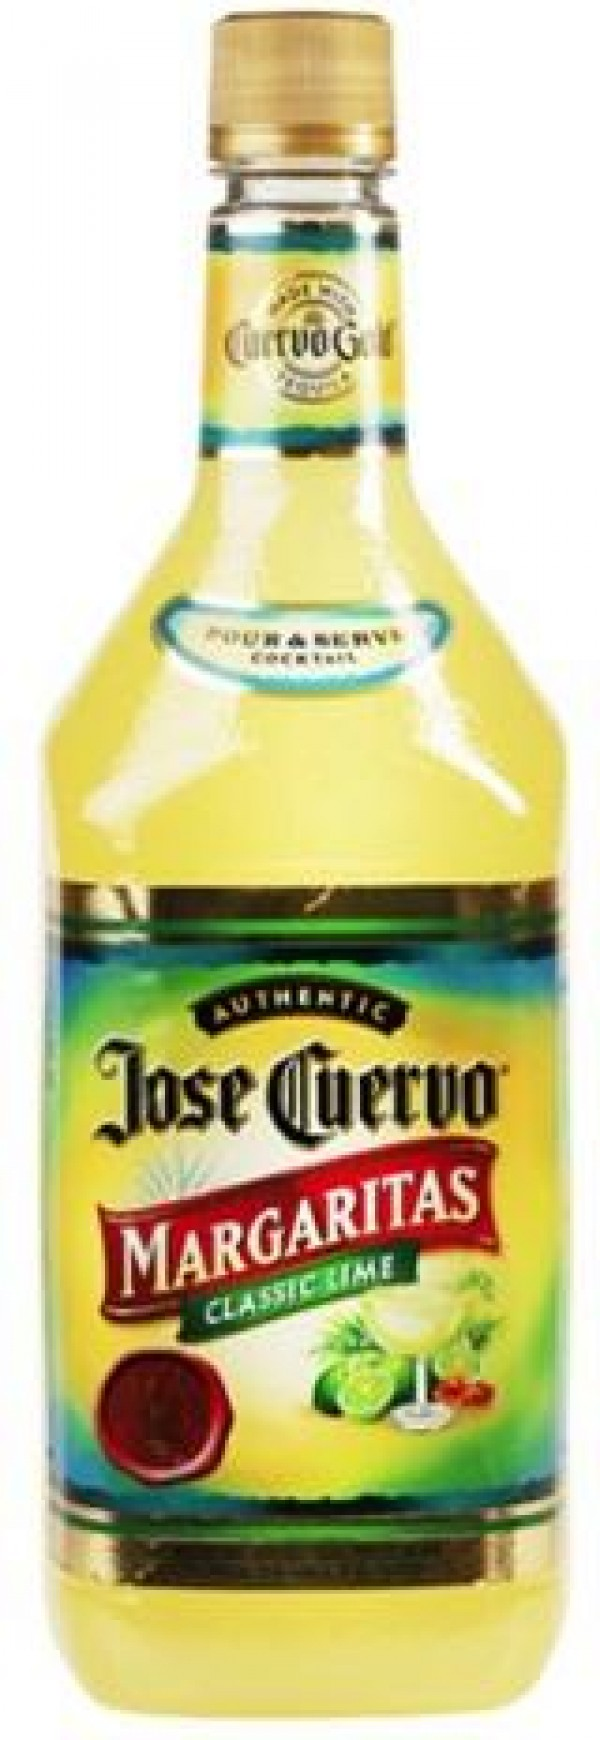 Jose Cuervo Margaritas Authentic Classic Lime